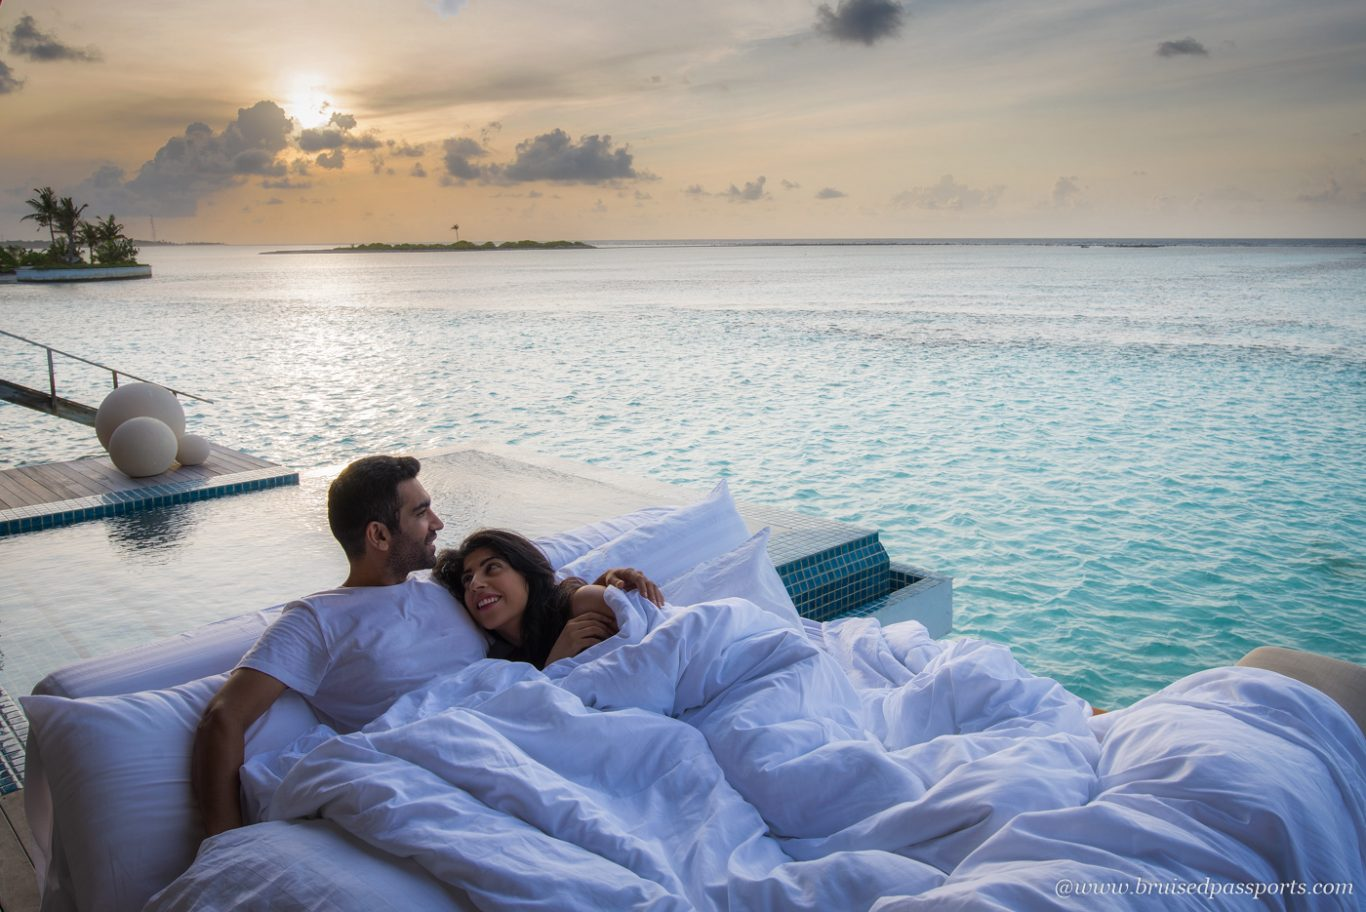 Sunrise at Club Med finolhu over water villas in Maldives